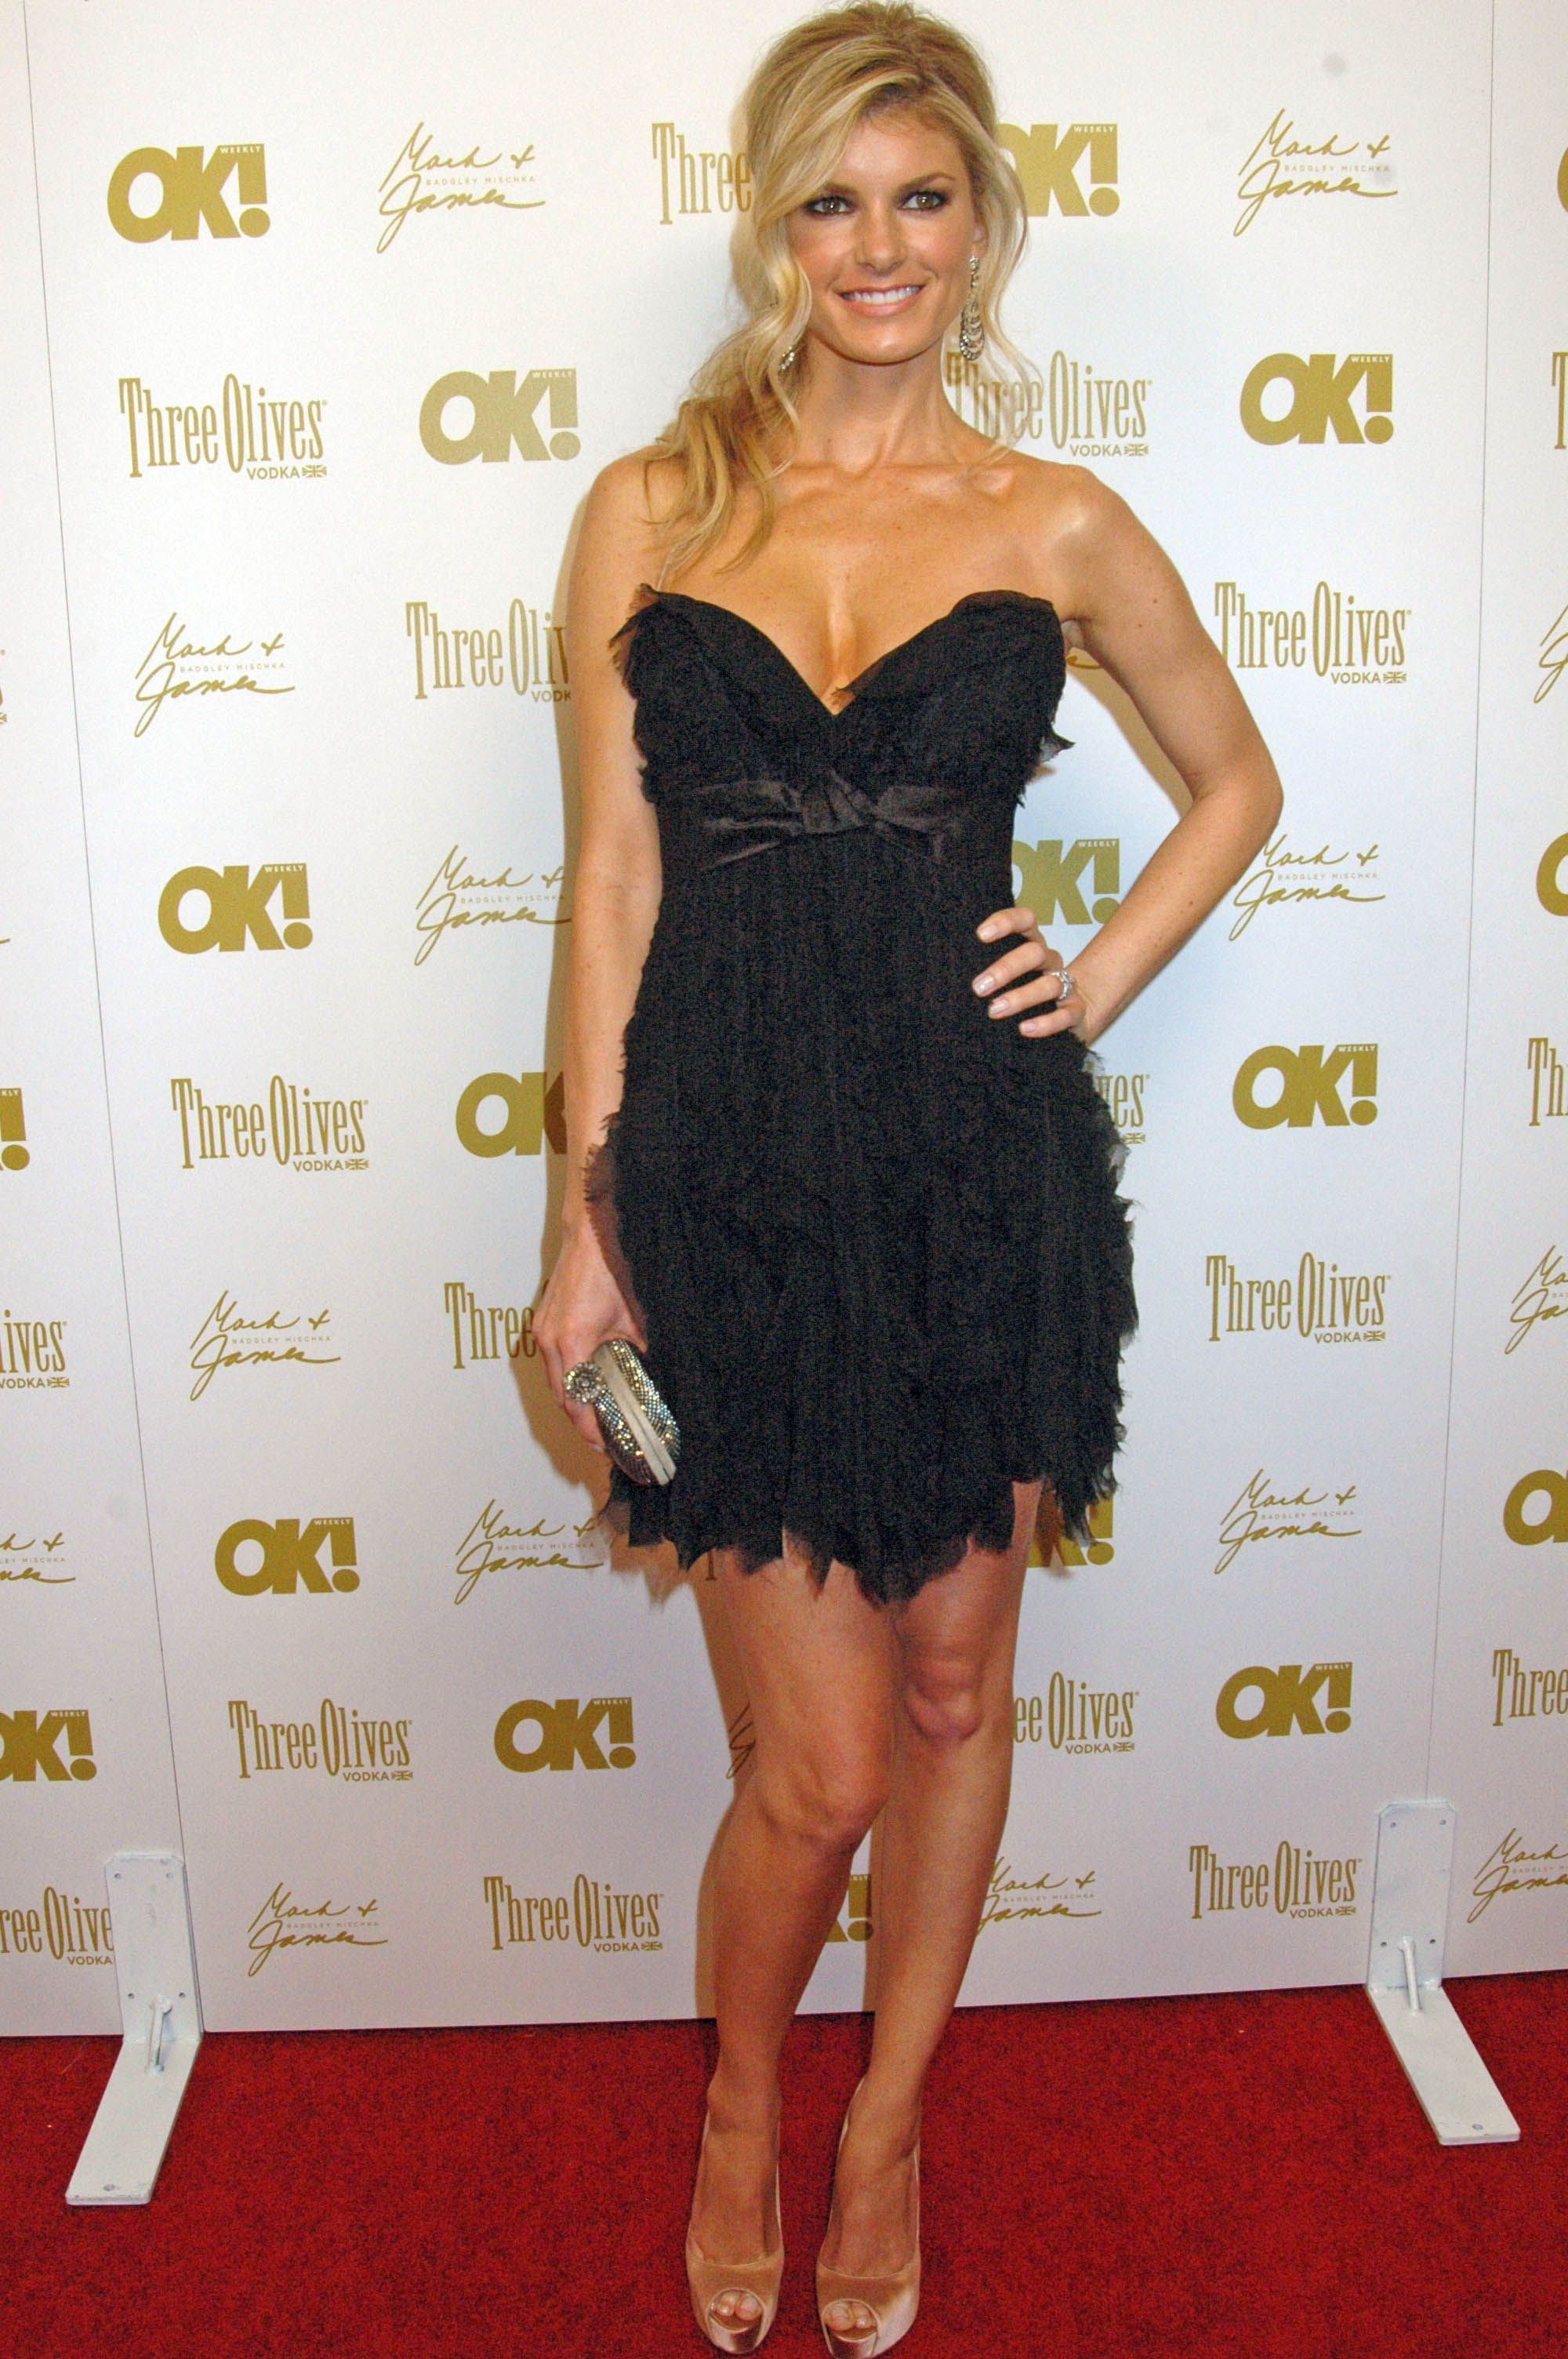 Marisa Miller Red Carpet Pics - Marisa Miller Red Carpet Pics